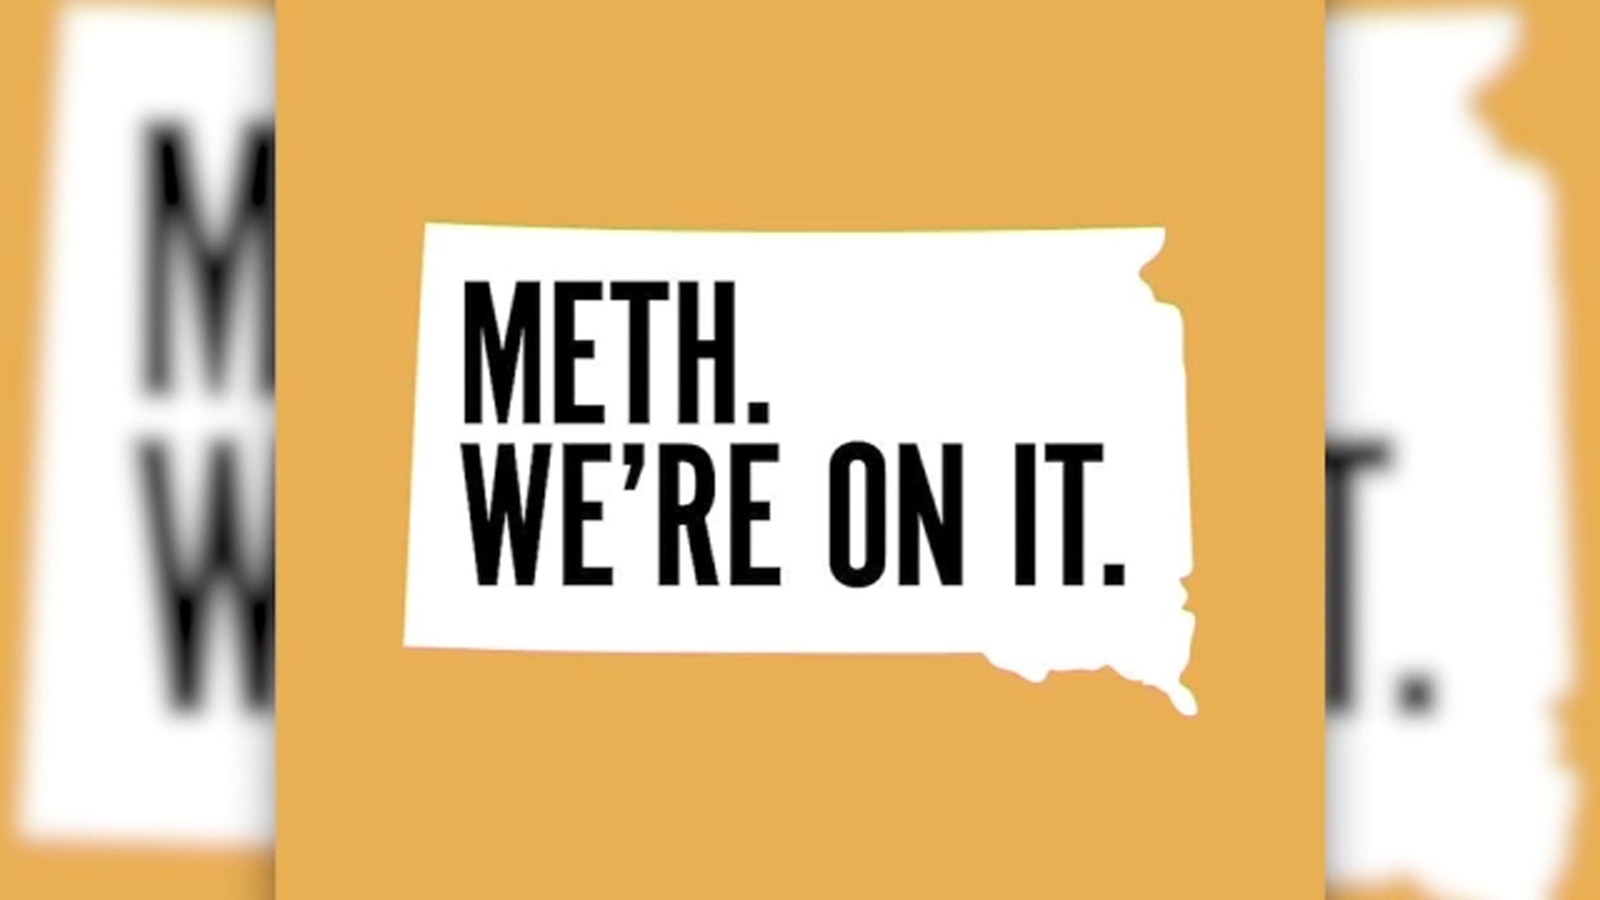 Im on meth South Dakota commercial kicks off campaign with